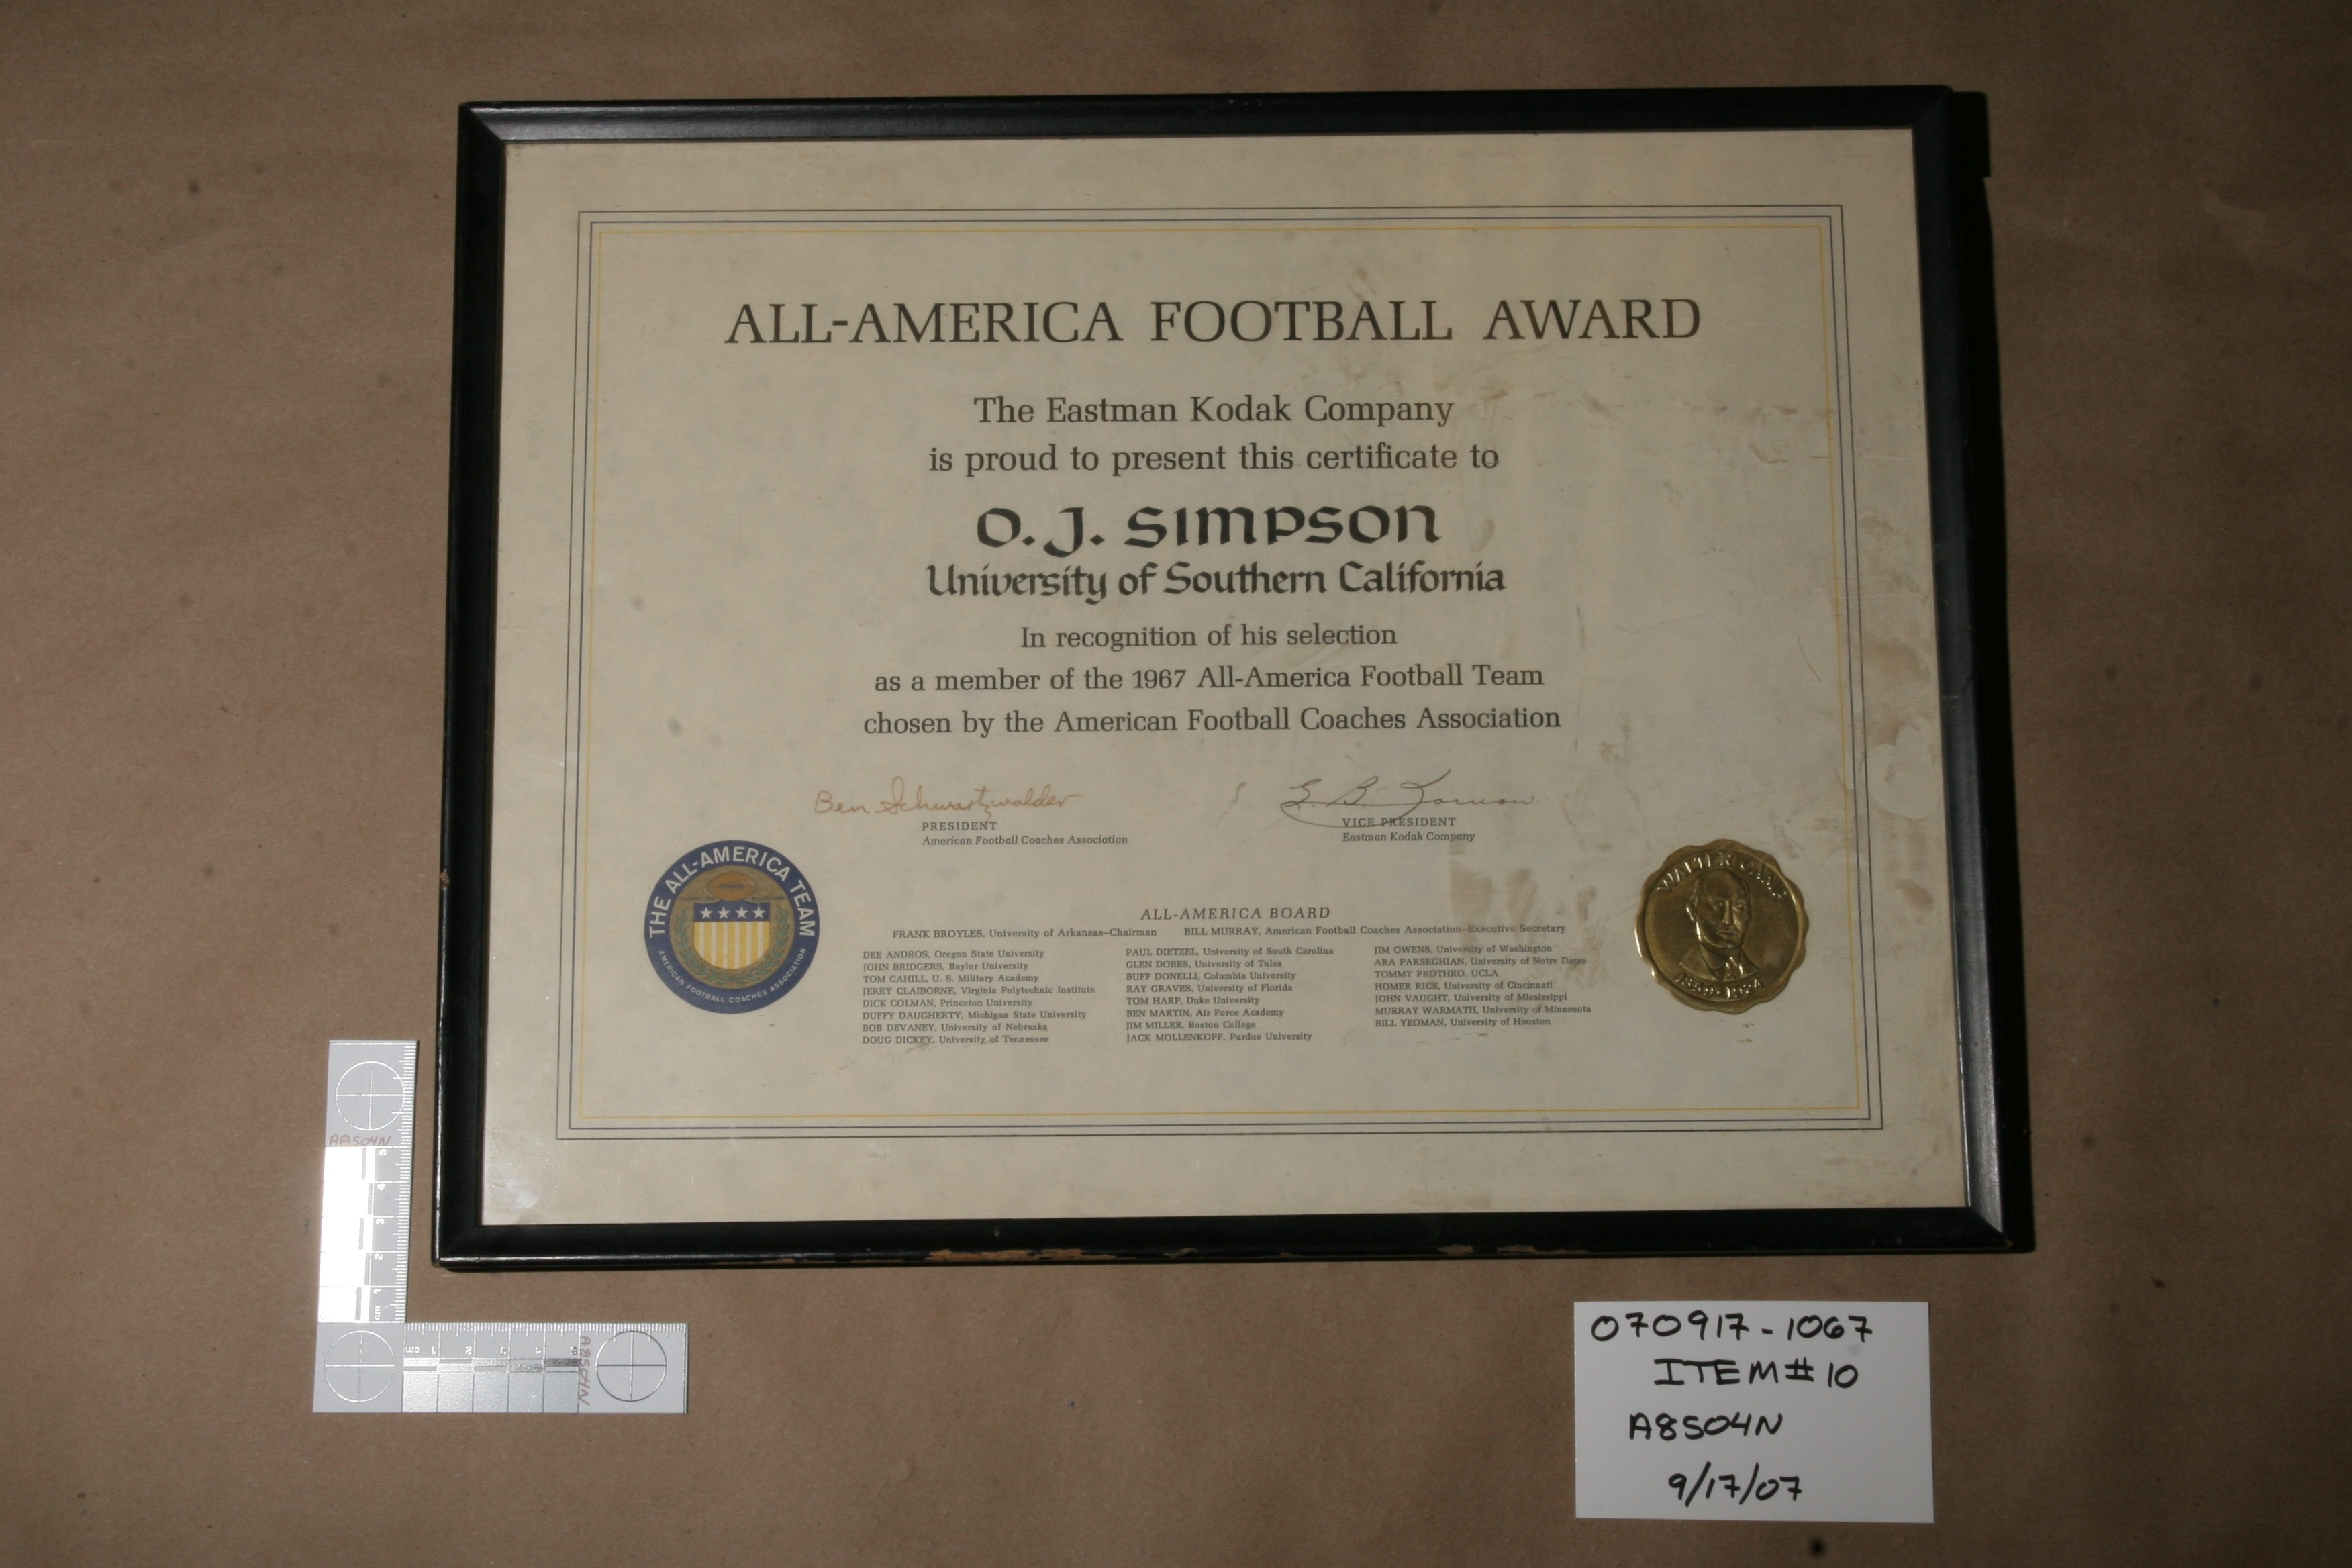 Evidence from O.J. Simpson's 2007 armed robbery and kidnapping case in Las Vegas. (Photo courtesy Andy Caldwell).